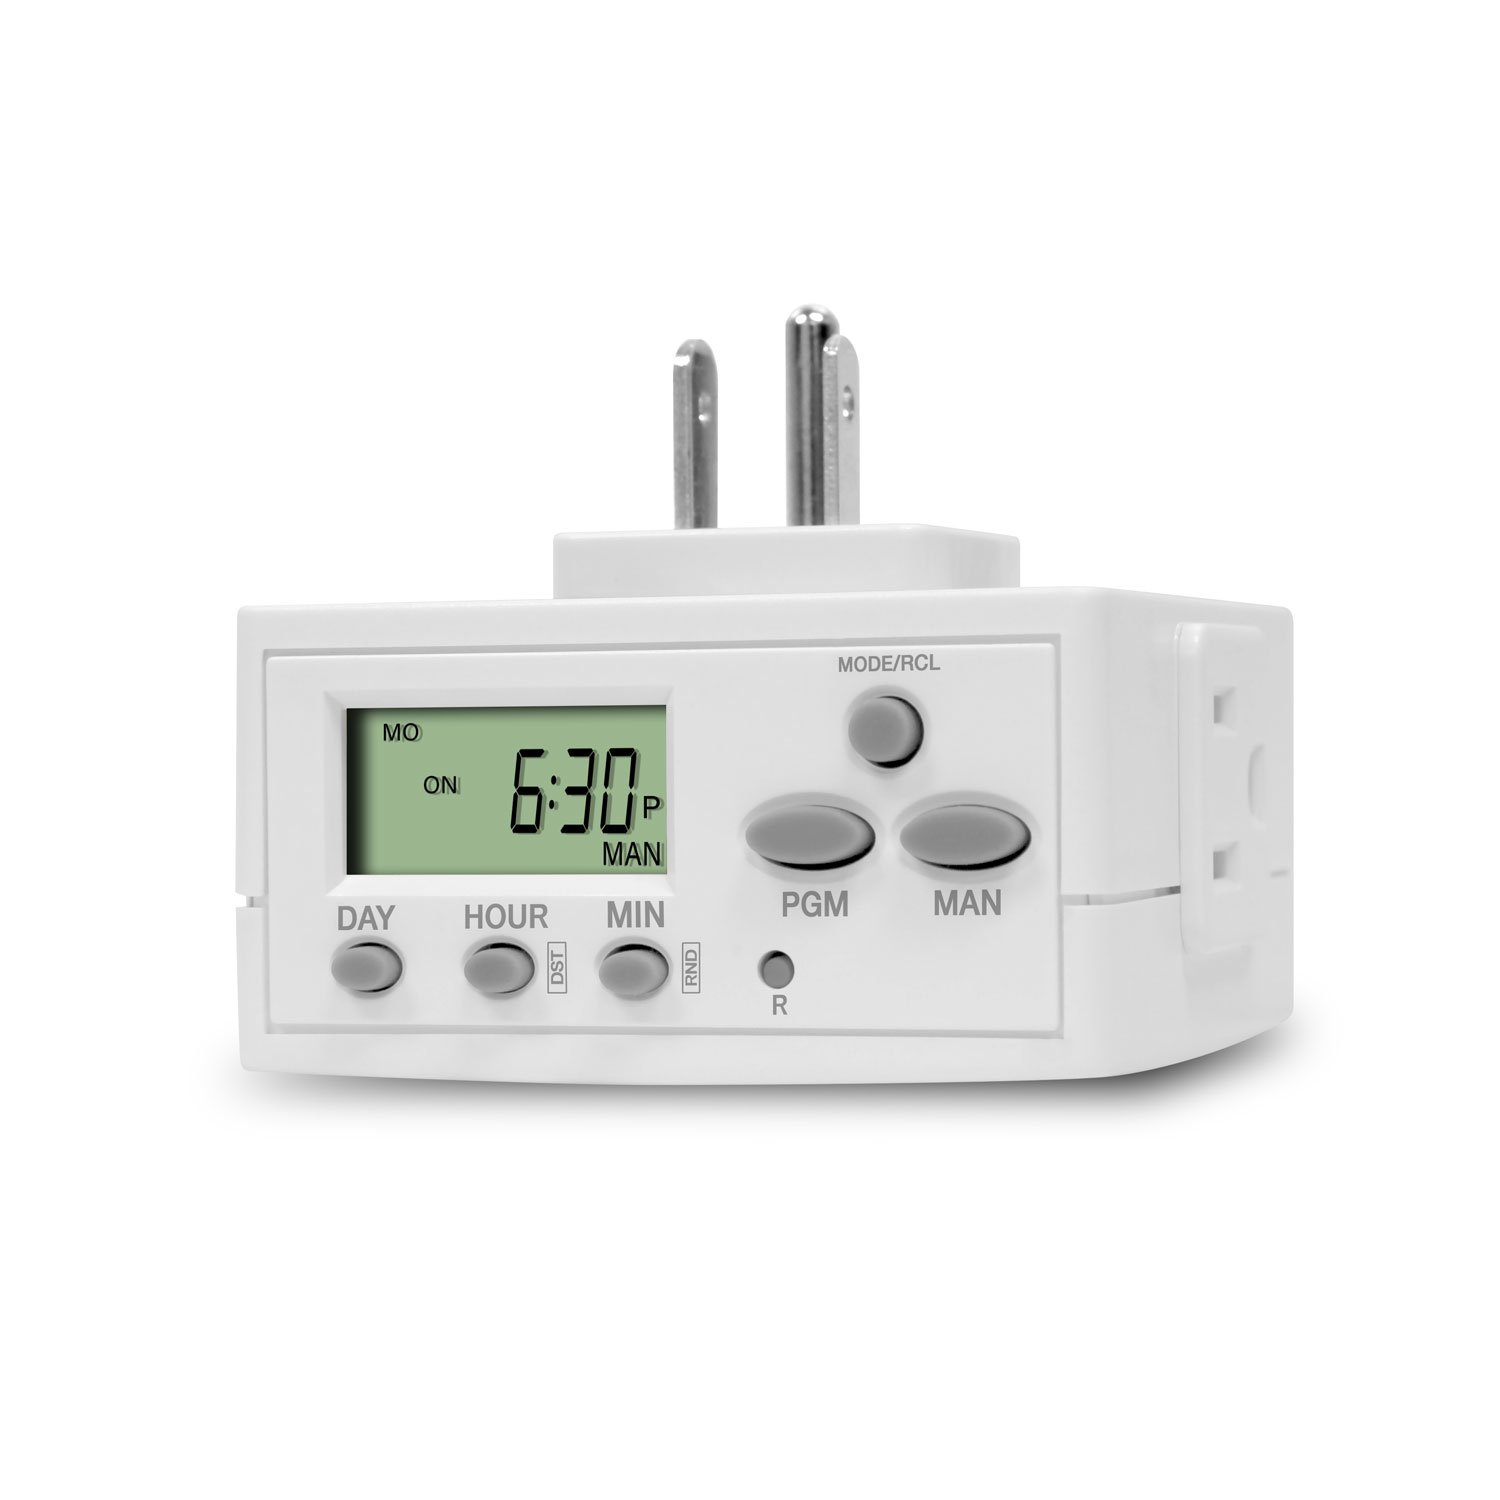 Topgreener Tgt02 2 Pack Heavy Duty 7 Day Programmable Plug-in Digital Timer... Cnc, Metalworking & Manufacturing